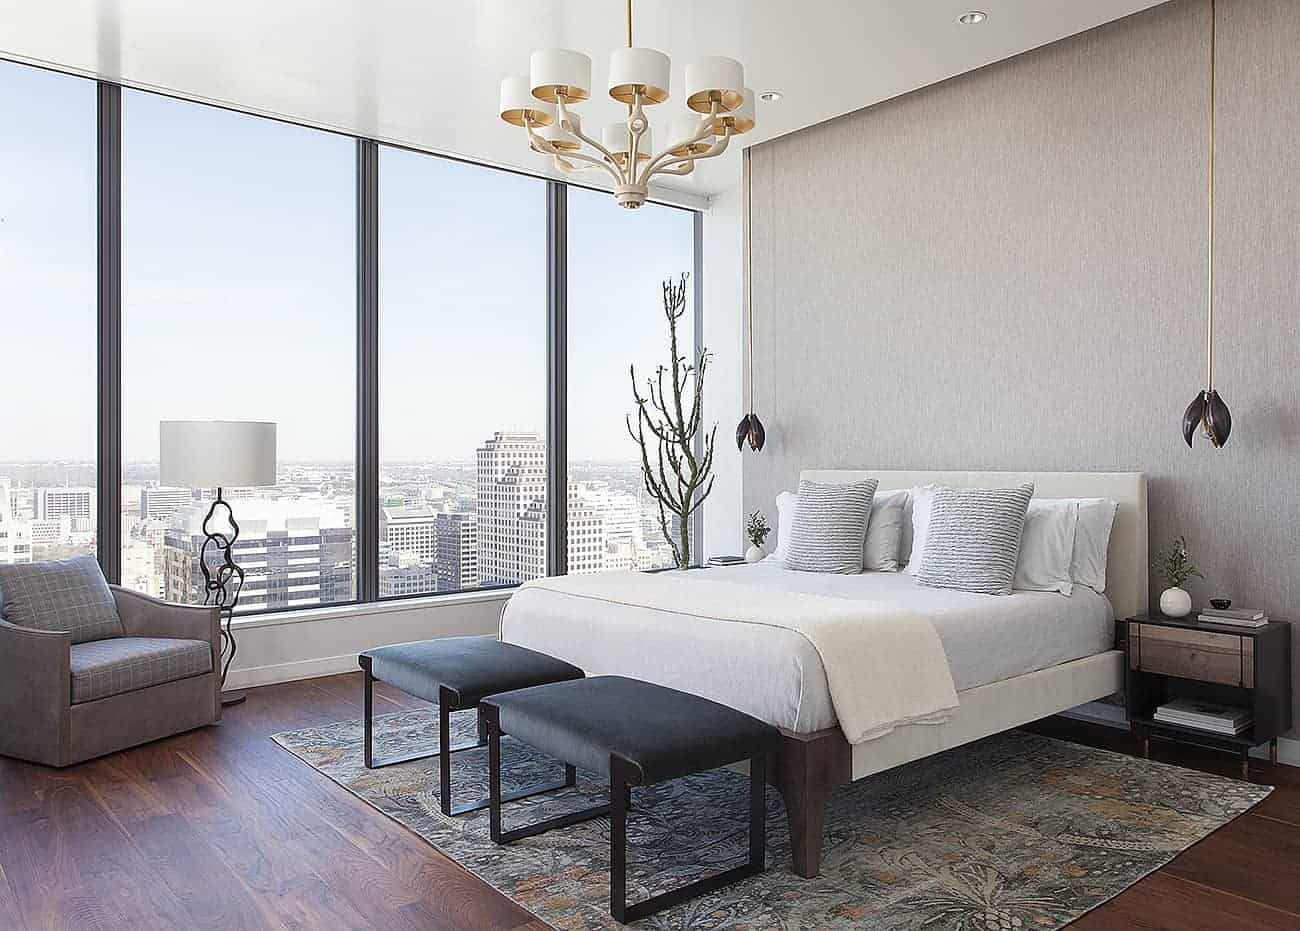 The dark hardwood flooring of this primary bedroom is brightened by the large glass walls on the right side of the bed that has a light gray headboard against a gray concrete wall accented with a pair of flower-like pendant lights.